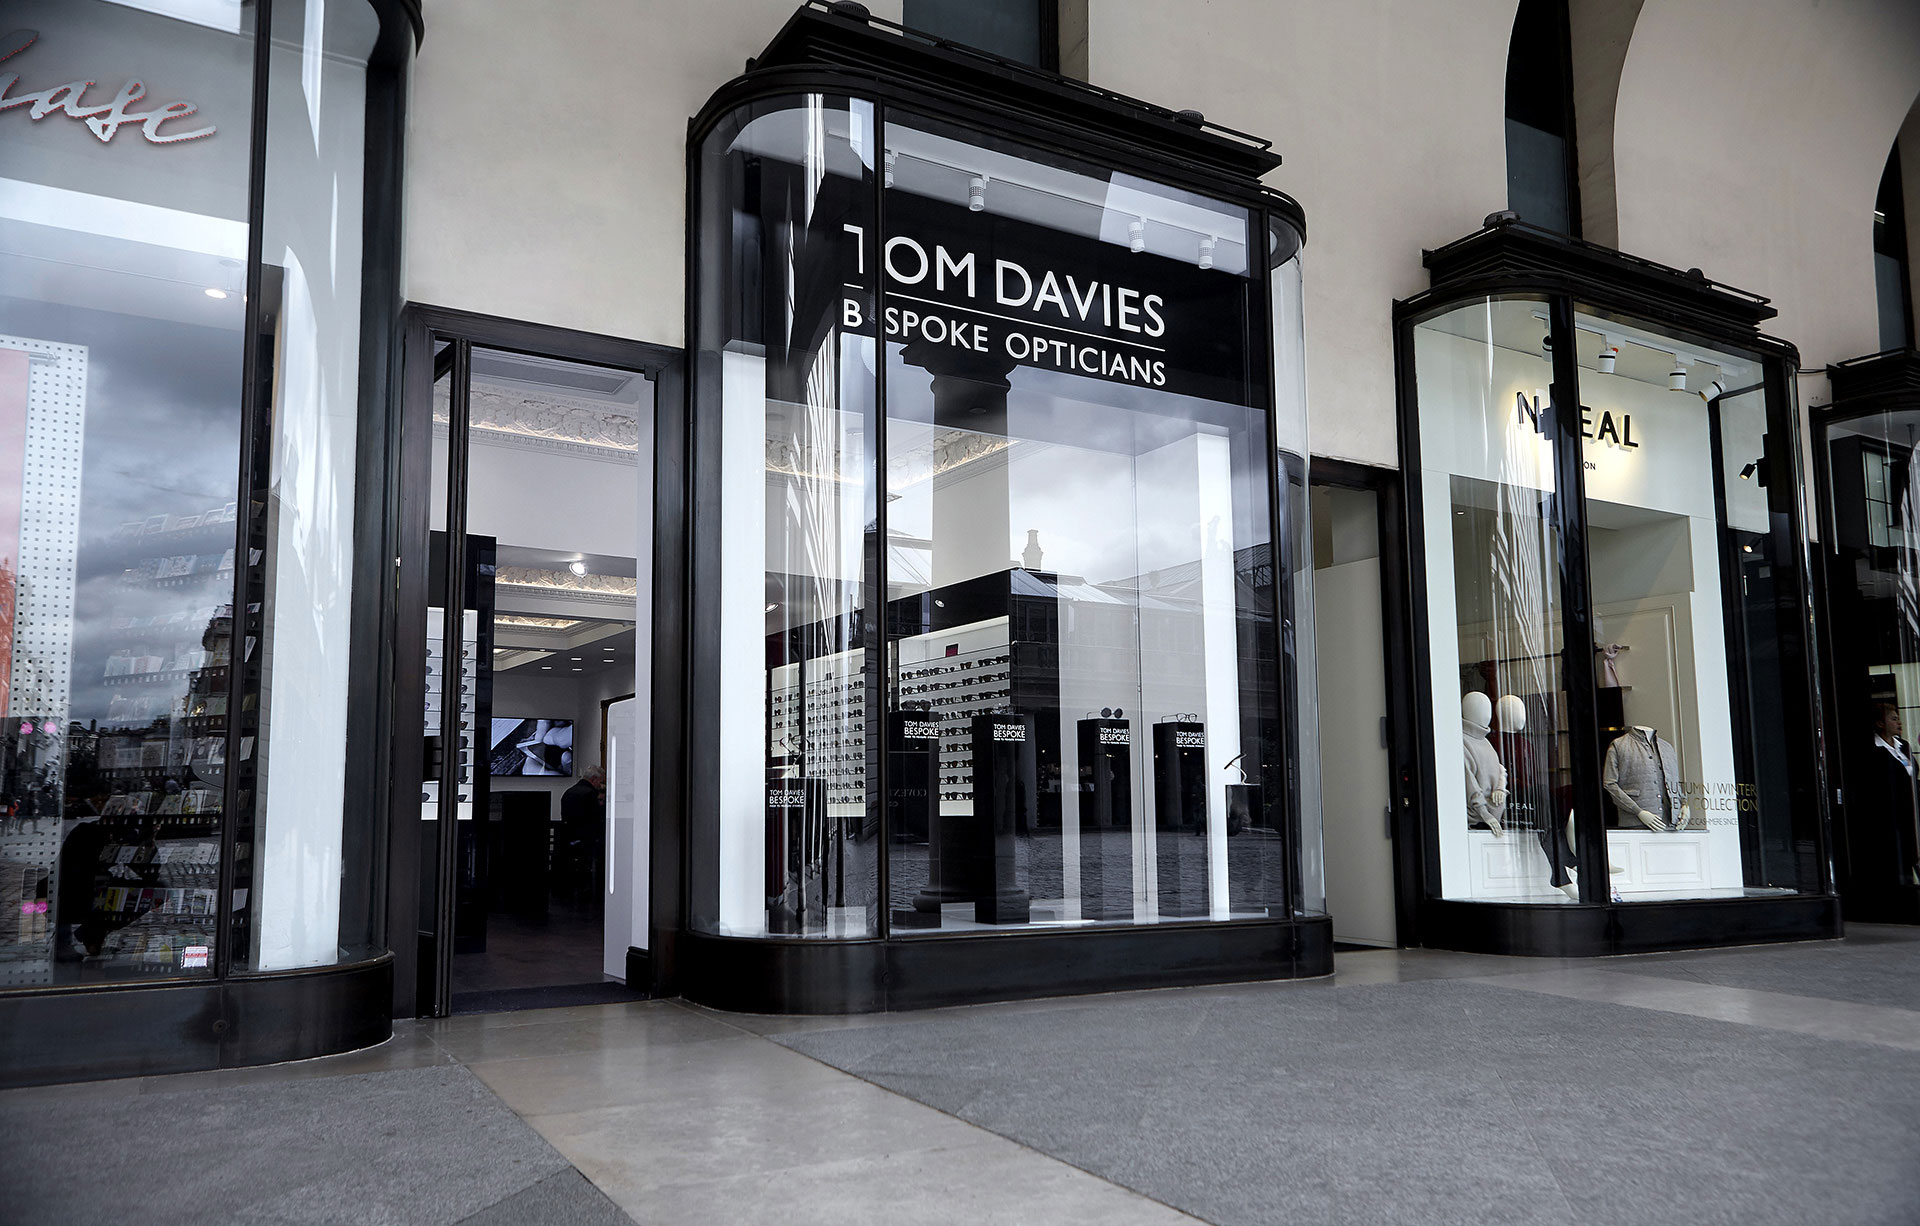 Store front of Tom Davies Bespoke Opticians in Covent Garden